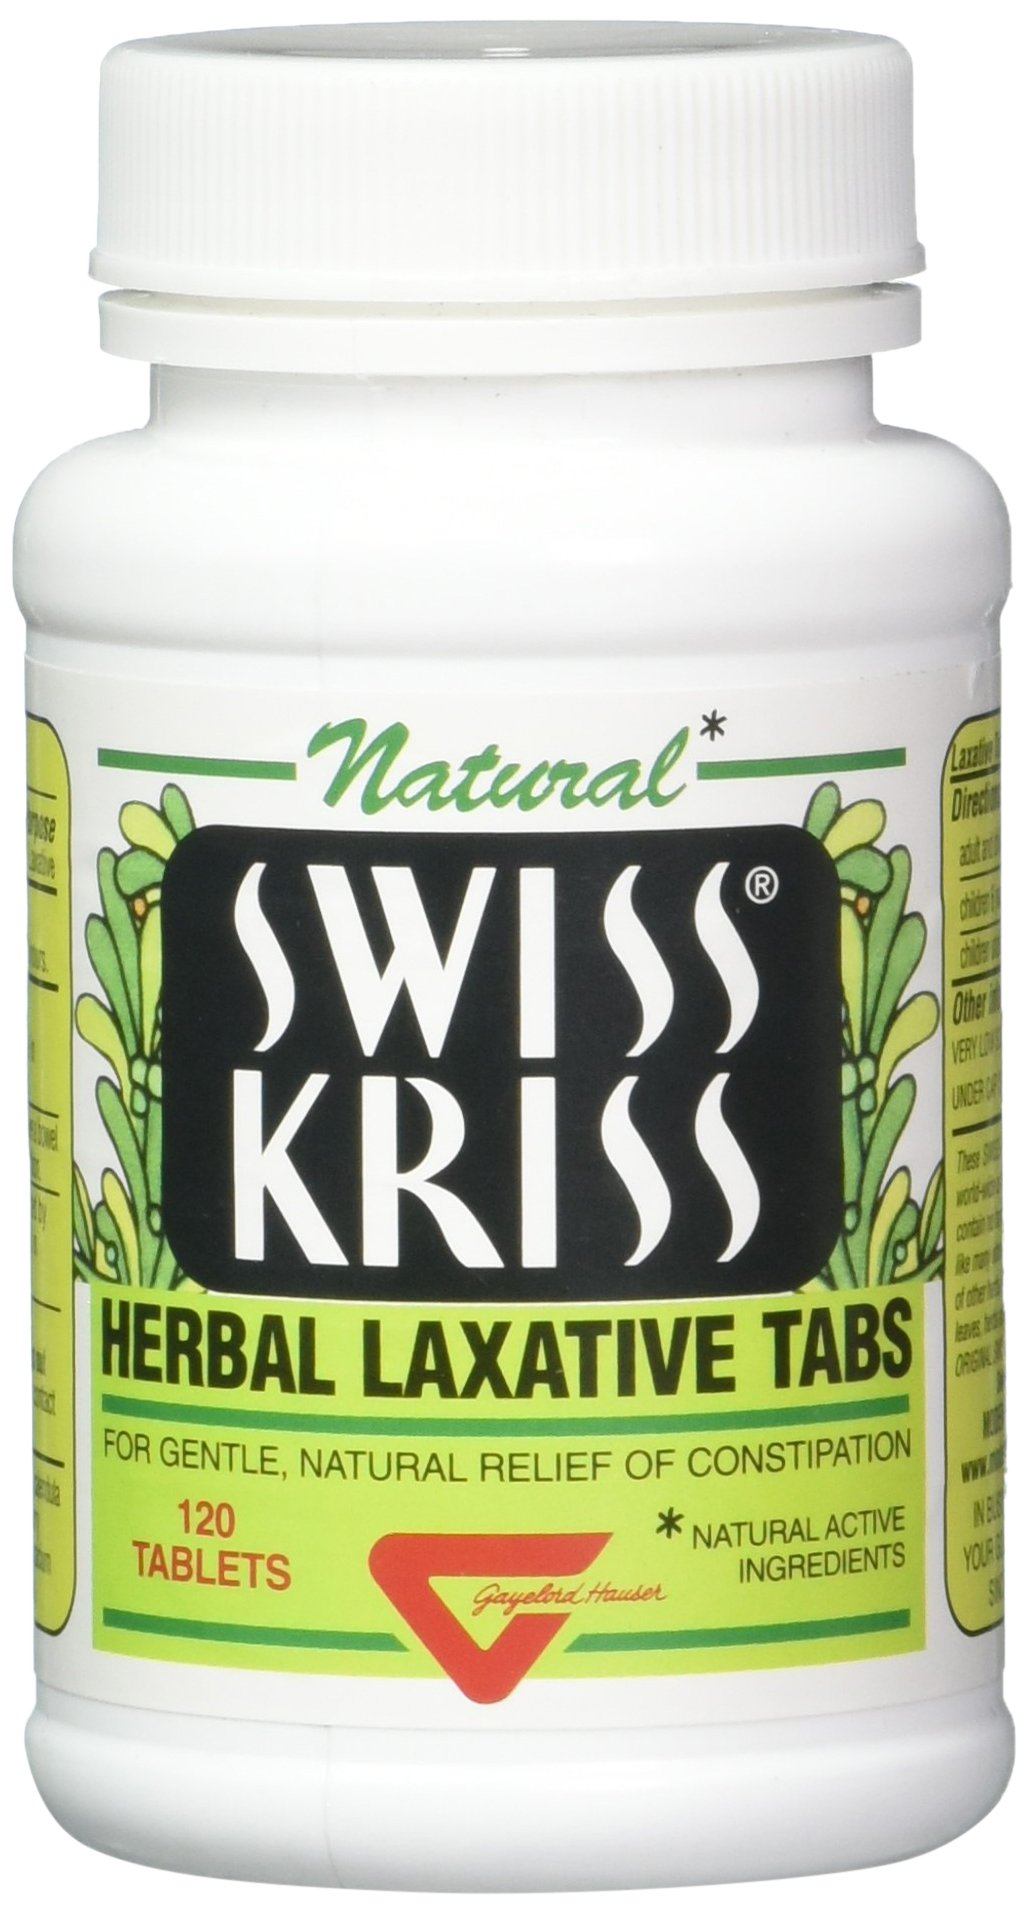 Swiss Kriss Herbal Laxative Tablets, 120 Count